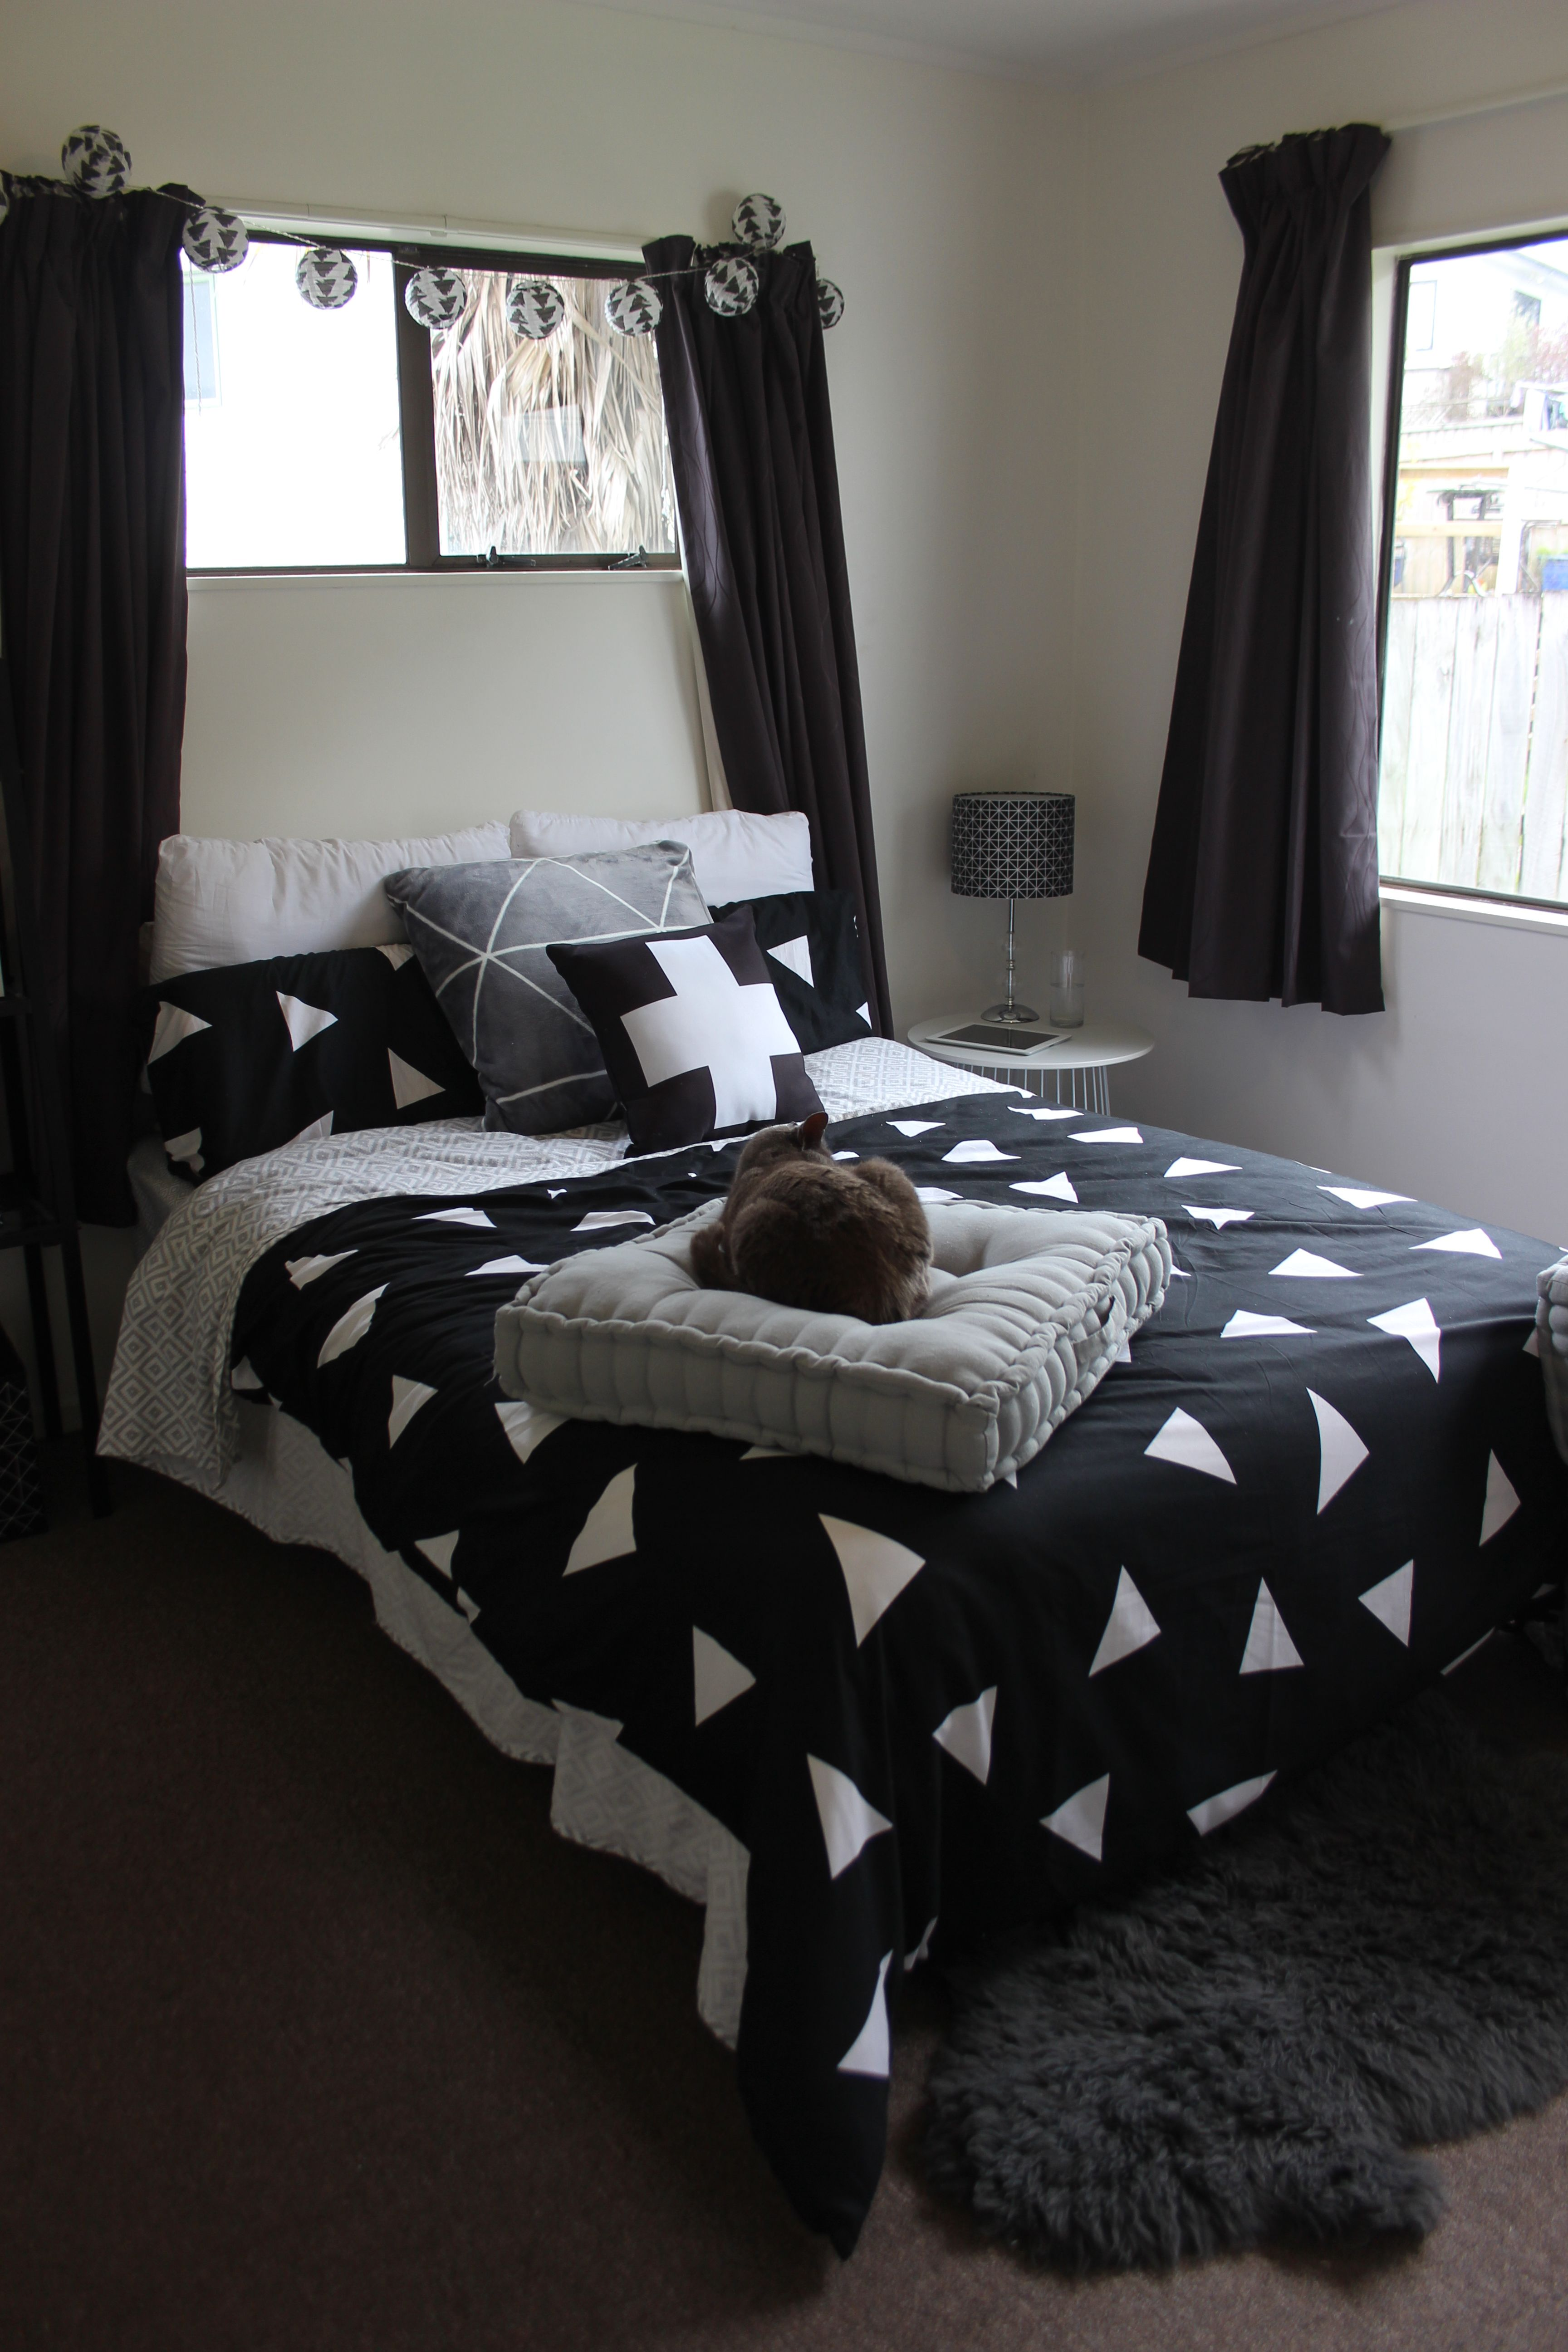 Monochrome bedroom decor - black, white and grey is life - styling ...